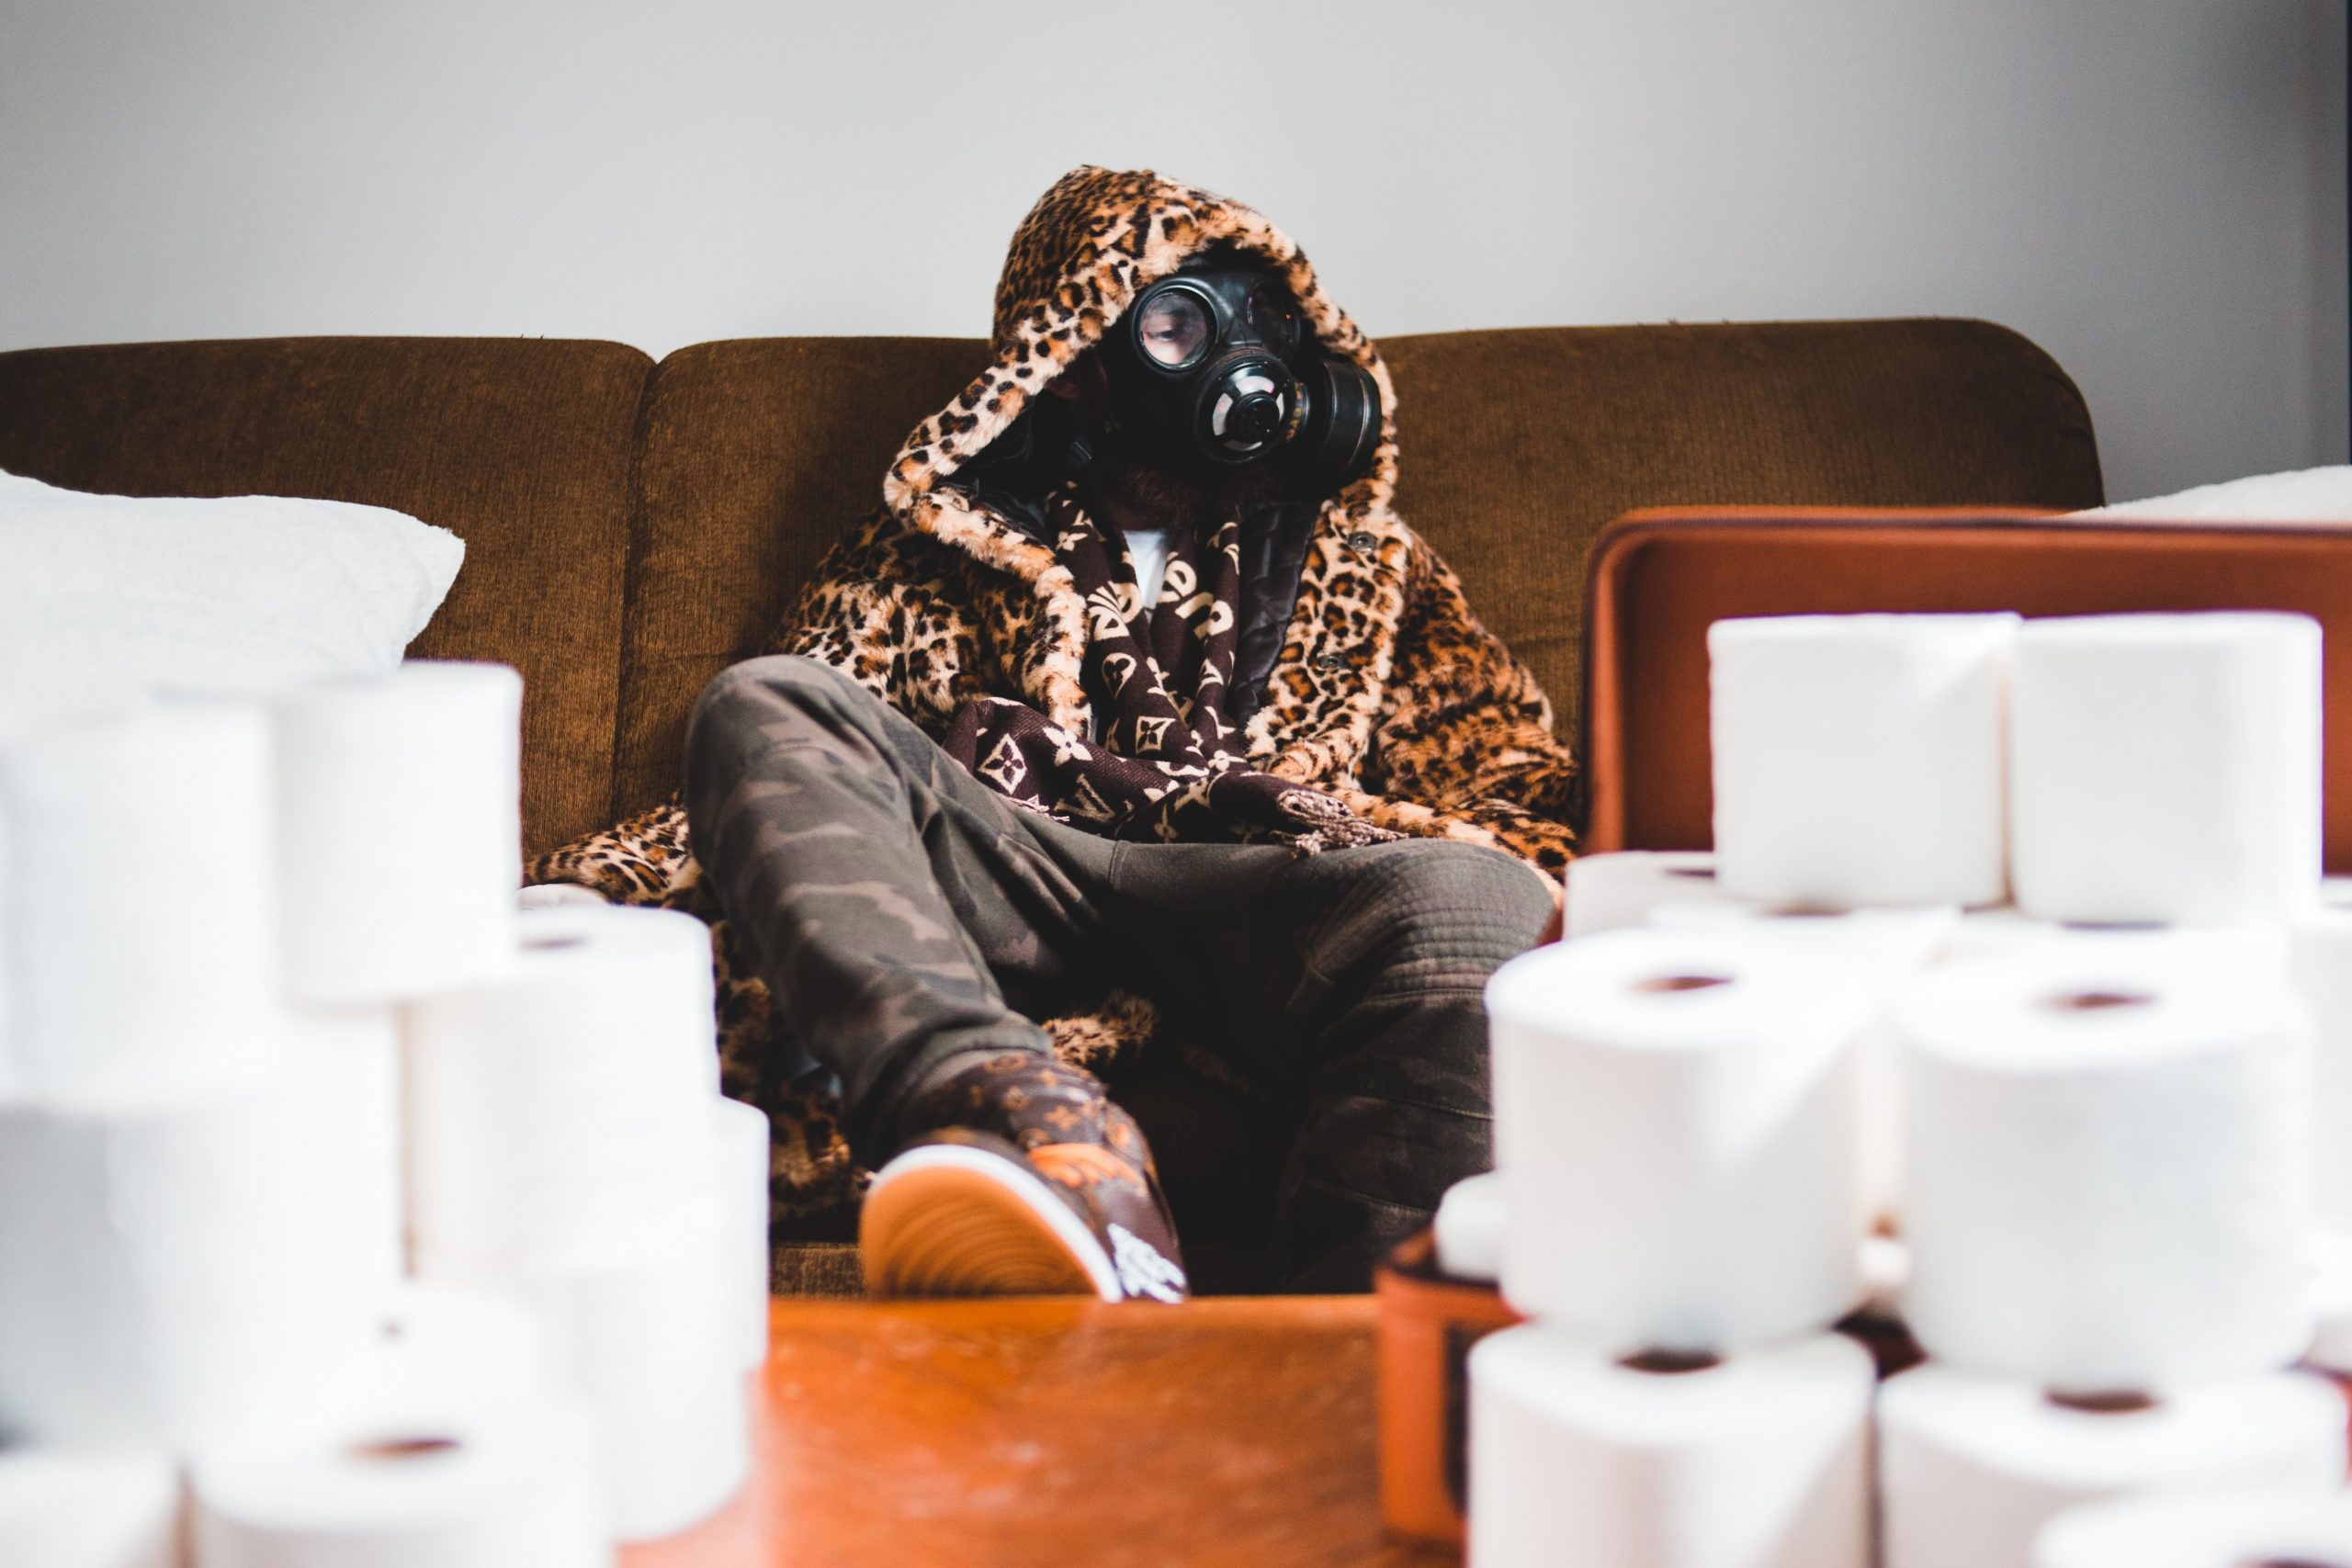 A person wearing a fashionable coat wearing a respiratory mask sitting behind a pile of toilet paper.